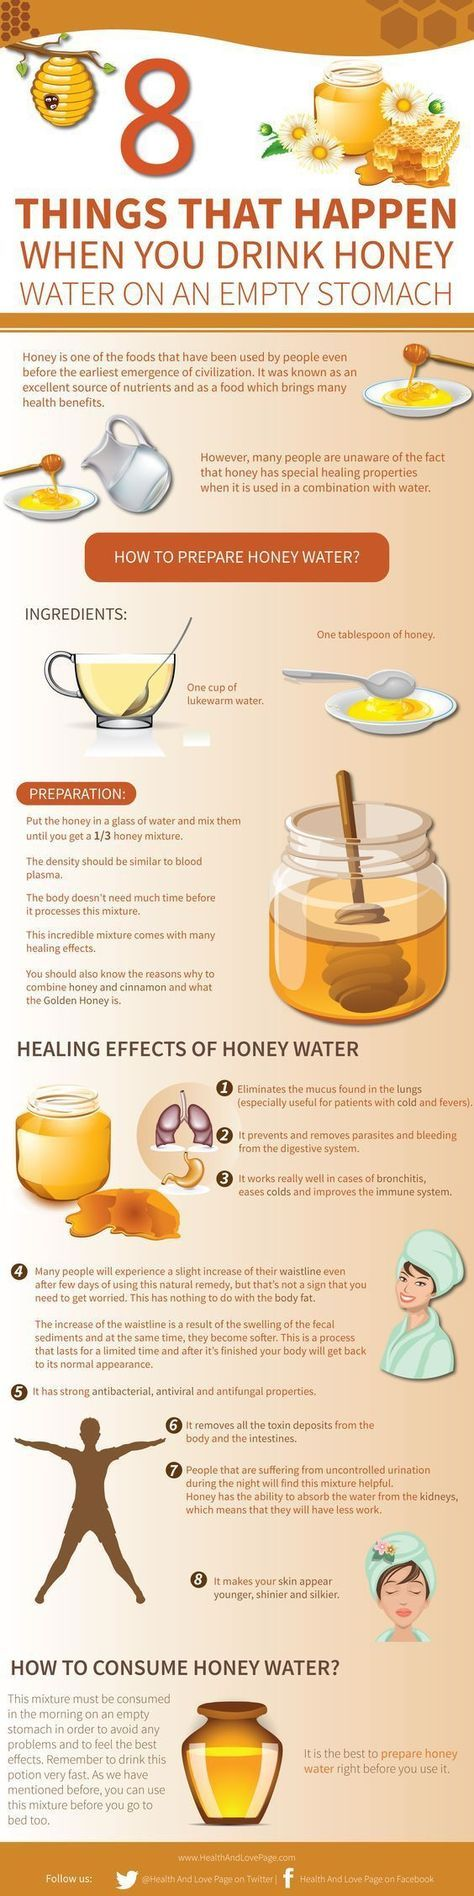 Things that happen when you drink honey water on an empty stomach